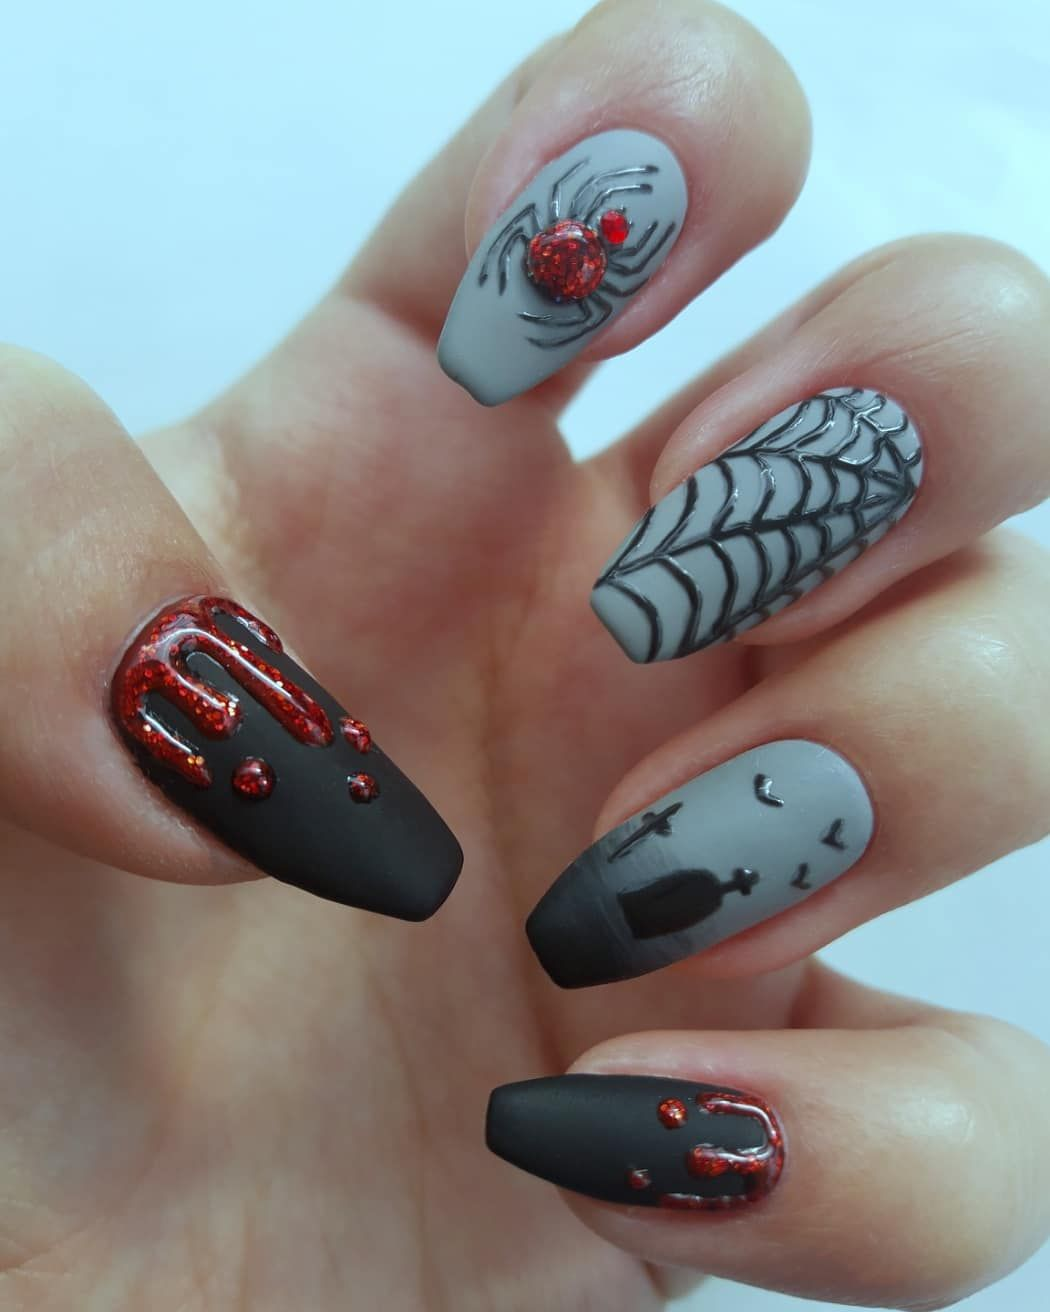 Amazing Work By Nailartjunky On Instagram Finally The Time Came To Make These And The Hard Work I Put Into Them Was Halloween Nails Nails Nail Art Designs